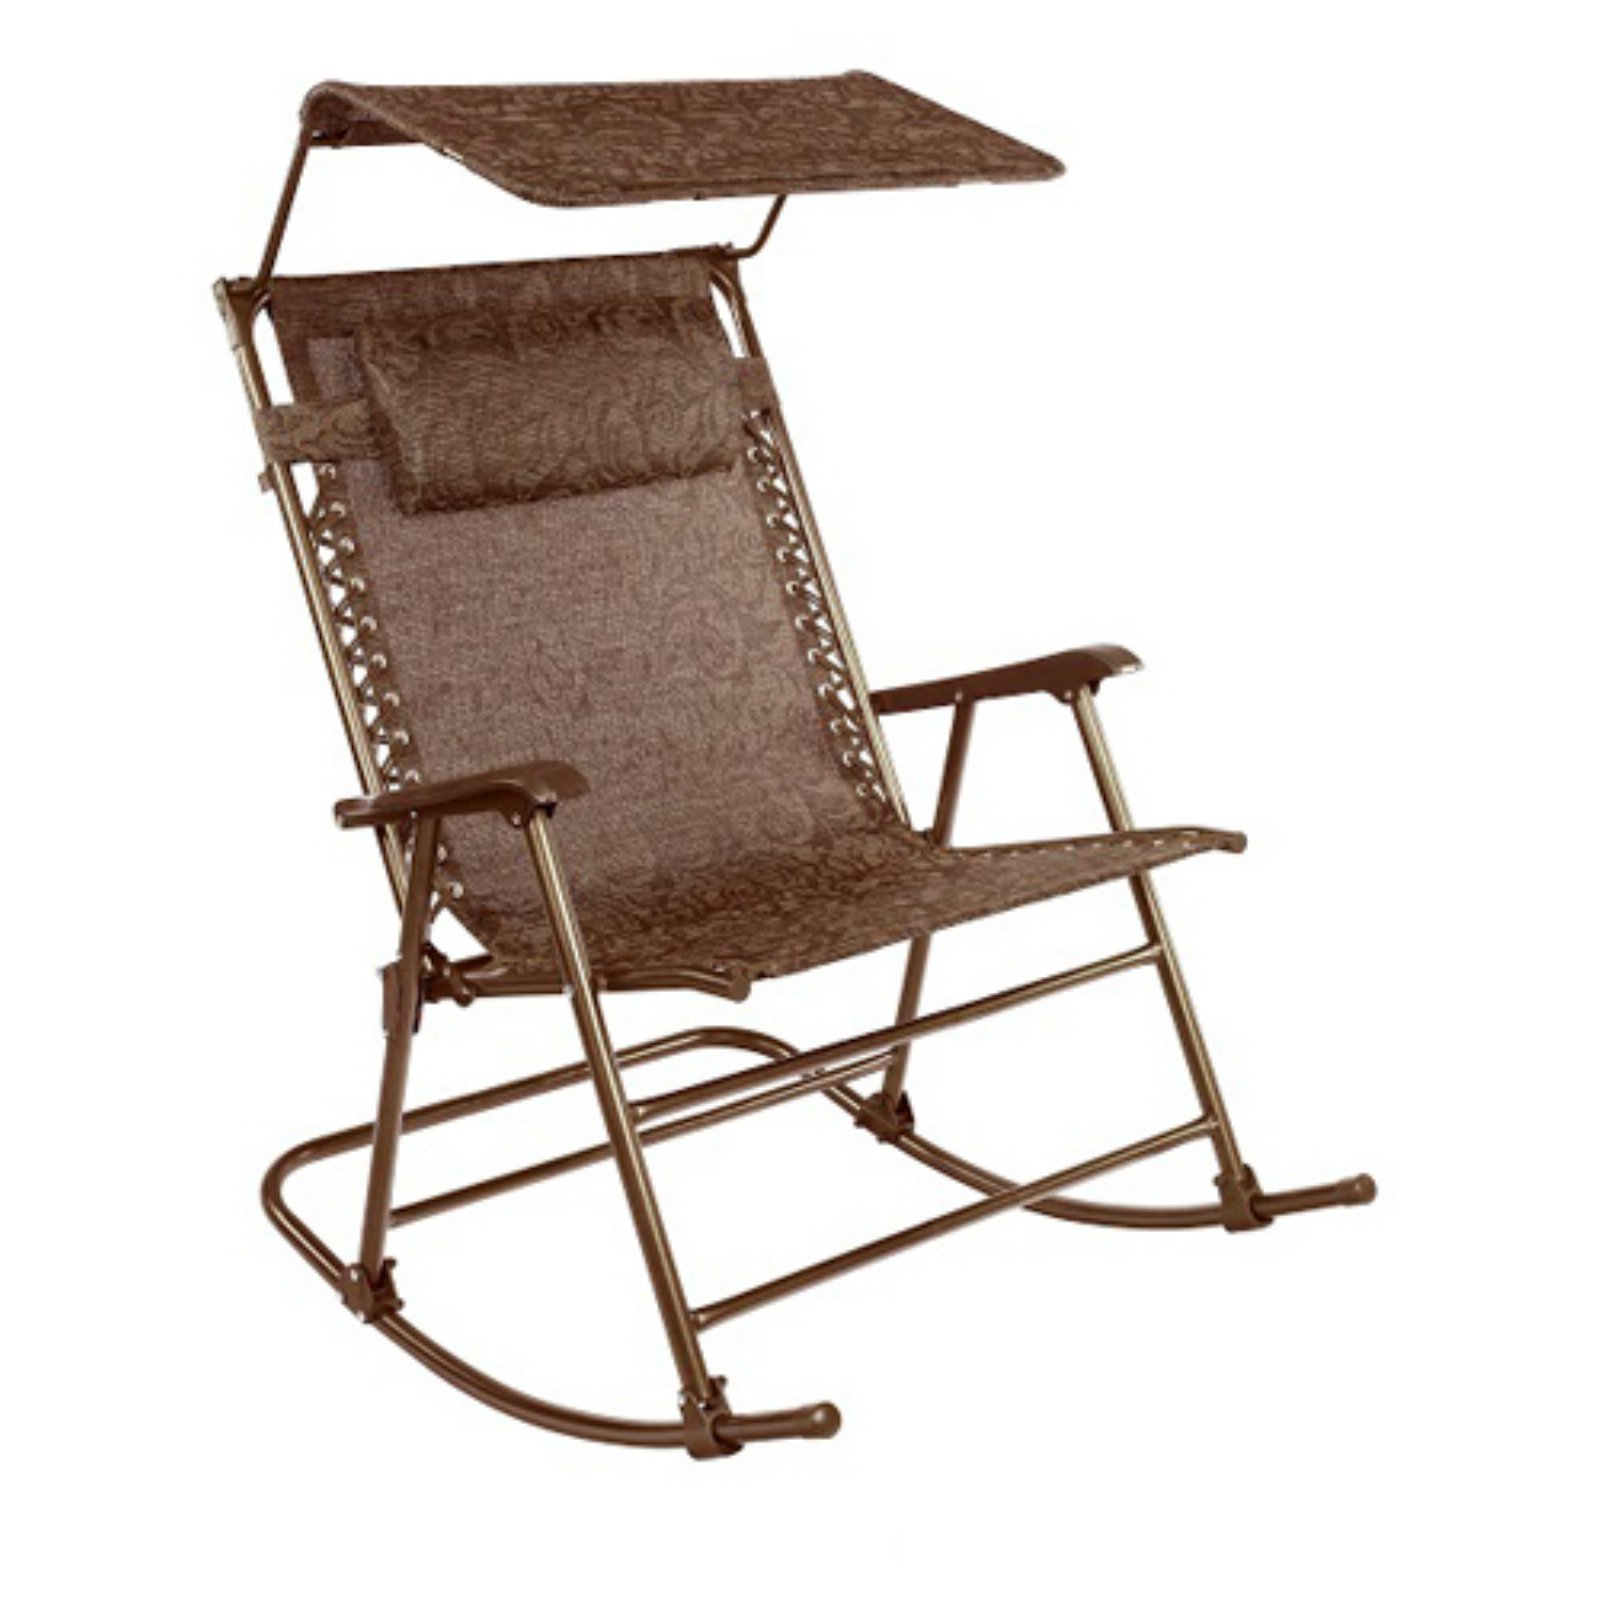 Deluxe Rocking Chair with Canopy